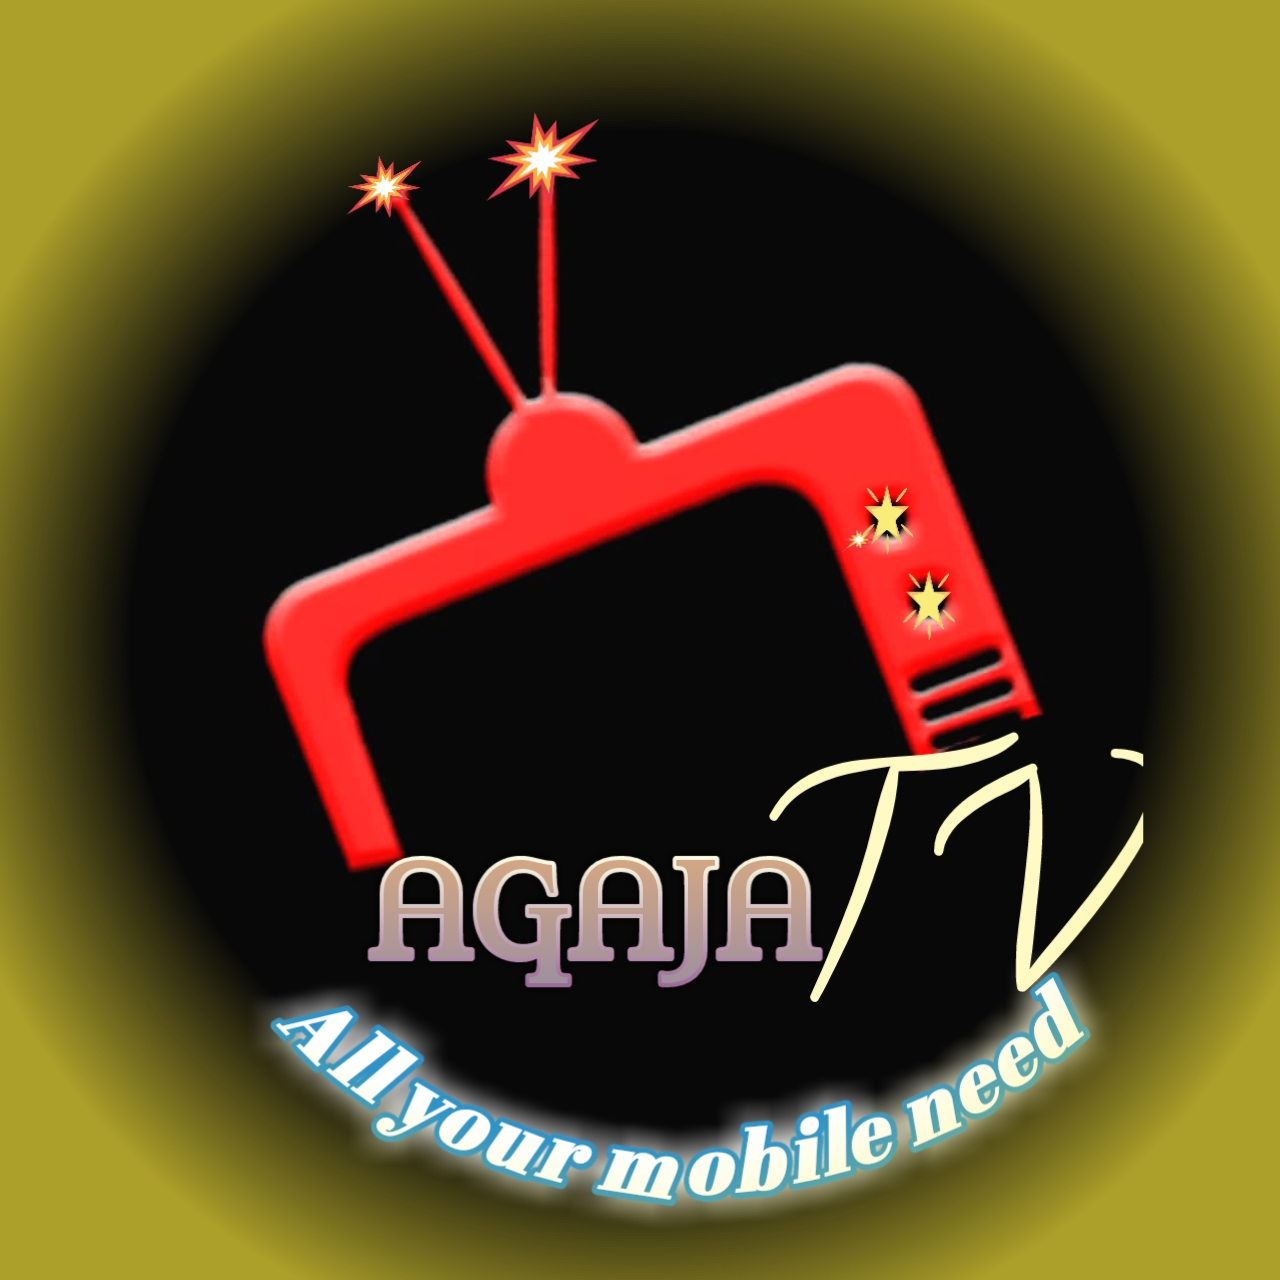 ALERAWAS BLOG ALL YOUR MOBILE NEED, HAUSA NOVEL, SIRRIKAN RIKYE MIJIDA GYARAN JIKI